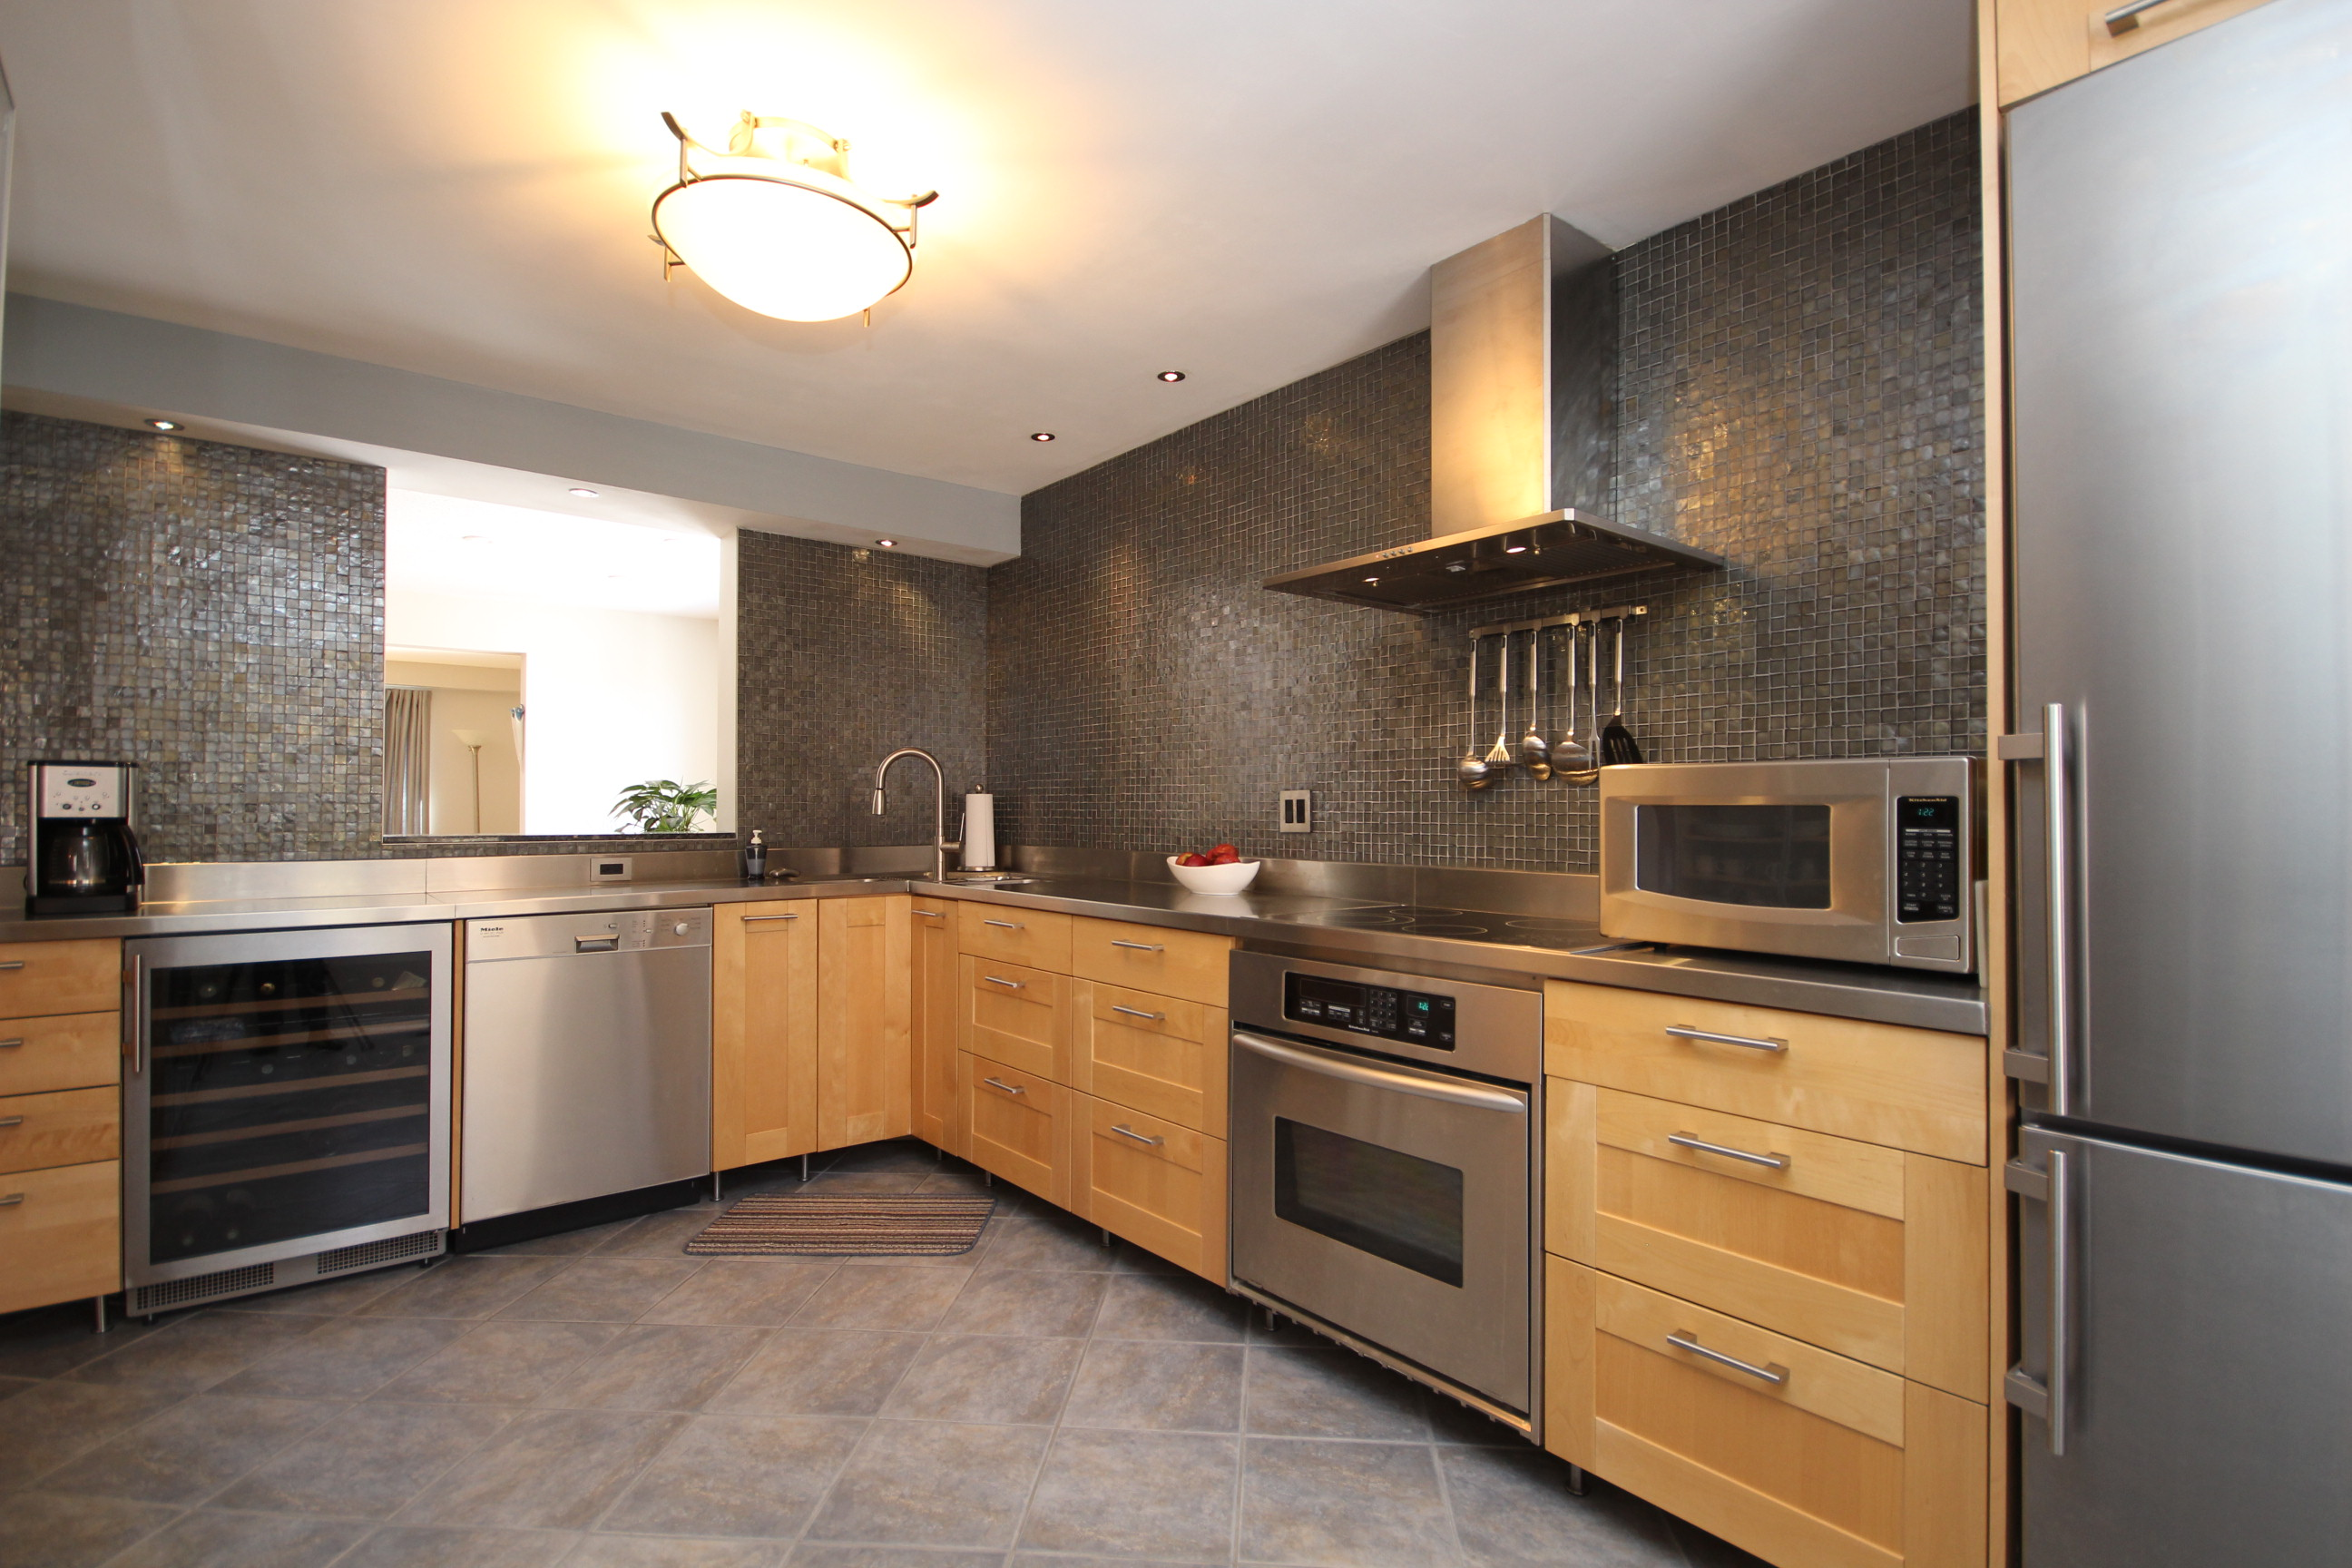 Kitchen Tiles Ottawa modernized town-home in the civic hospital community is sold